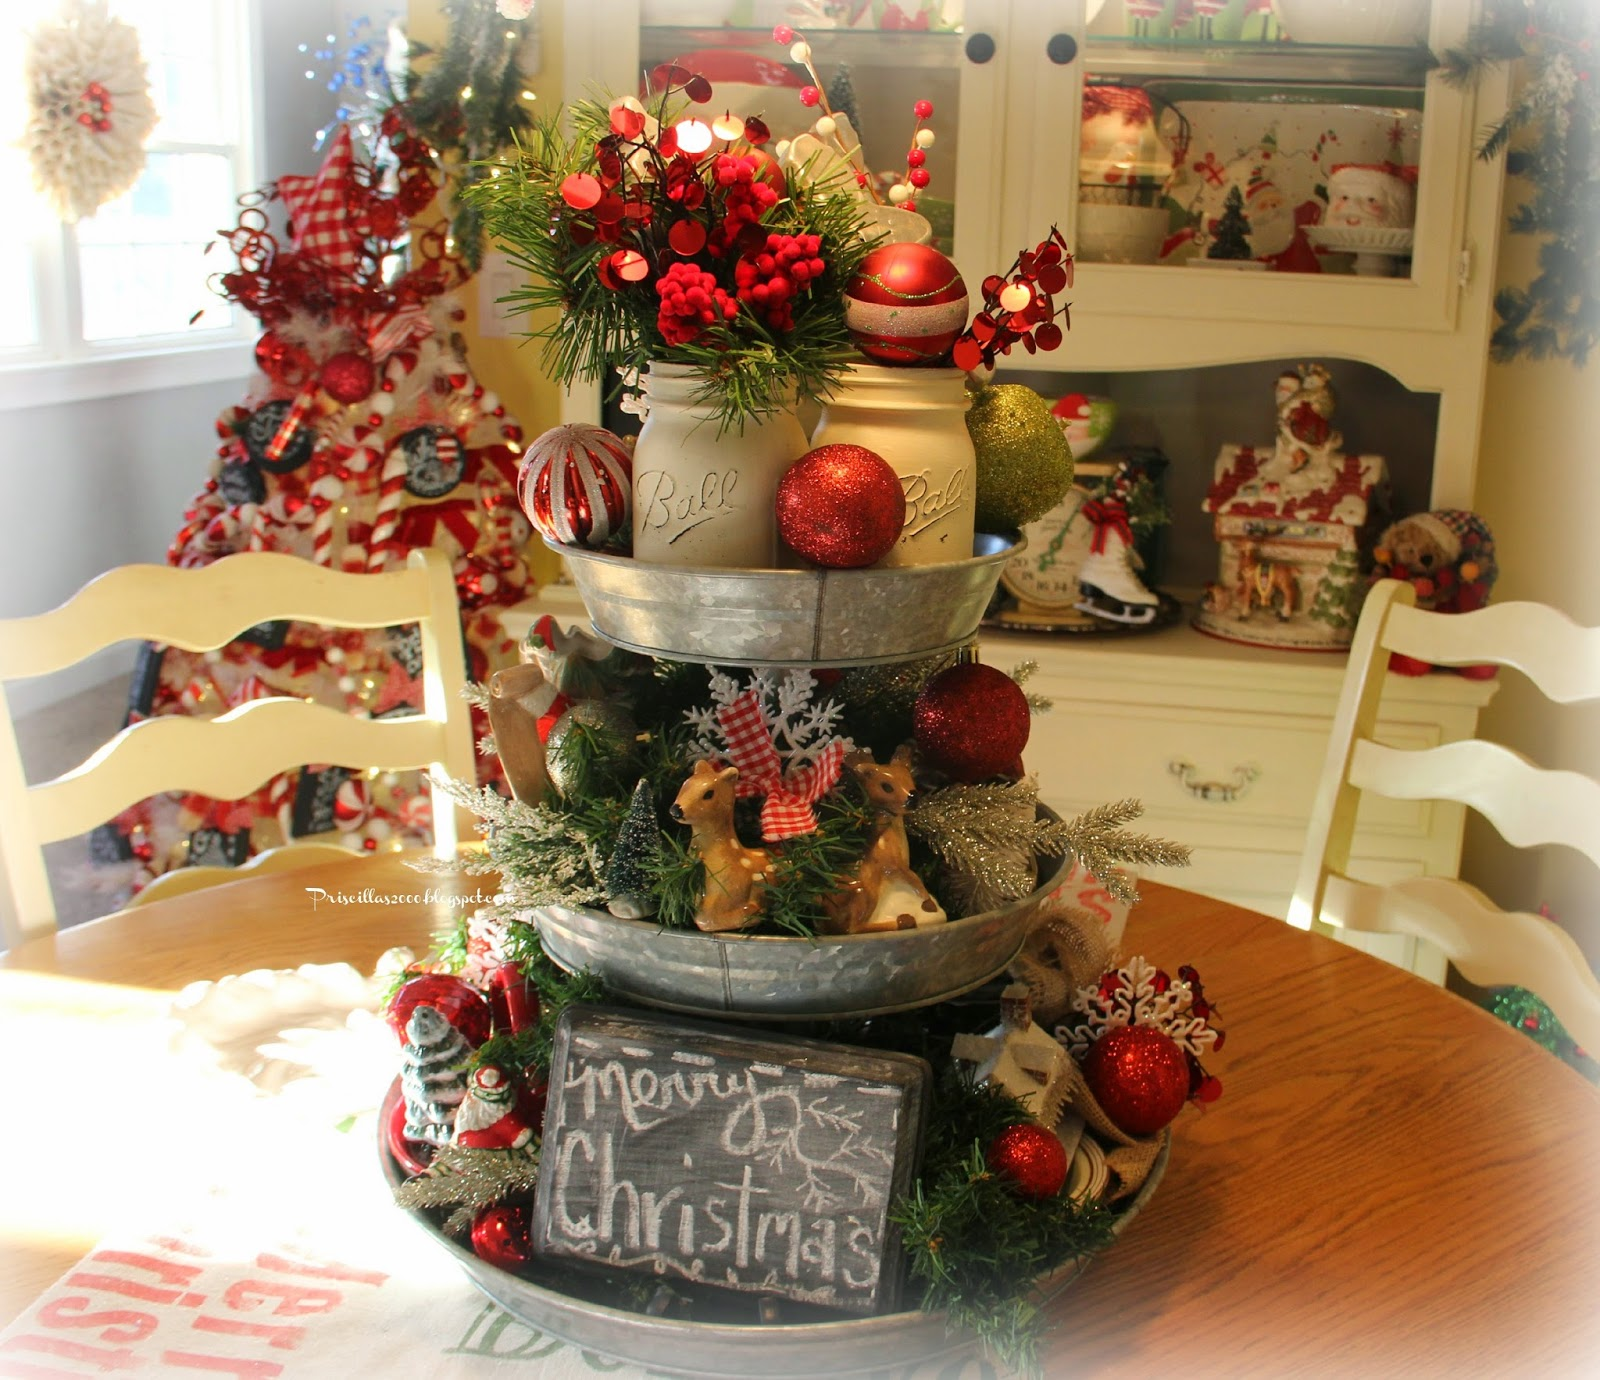 Priscillas Christmas Galvanized Tray Centerpiece